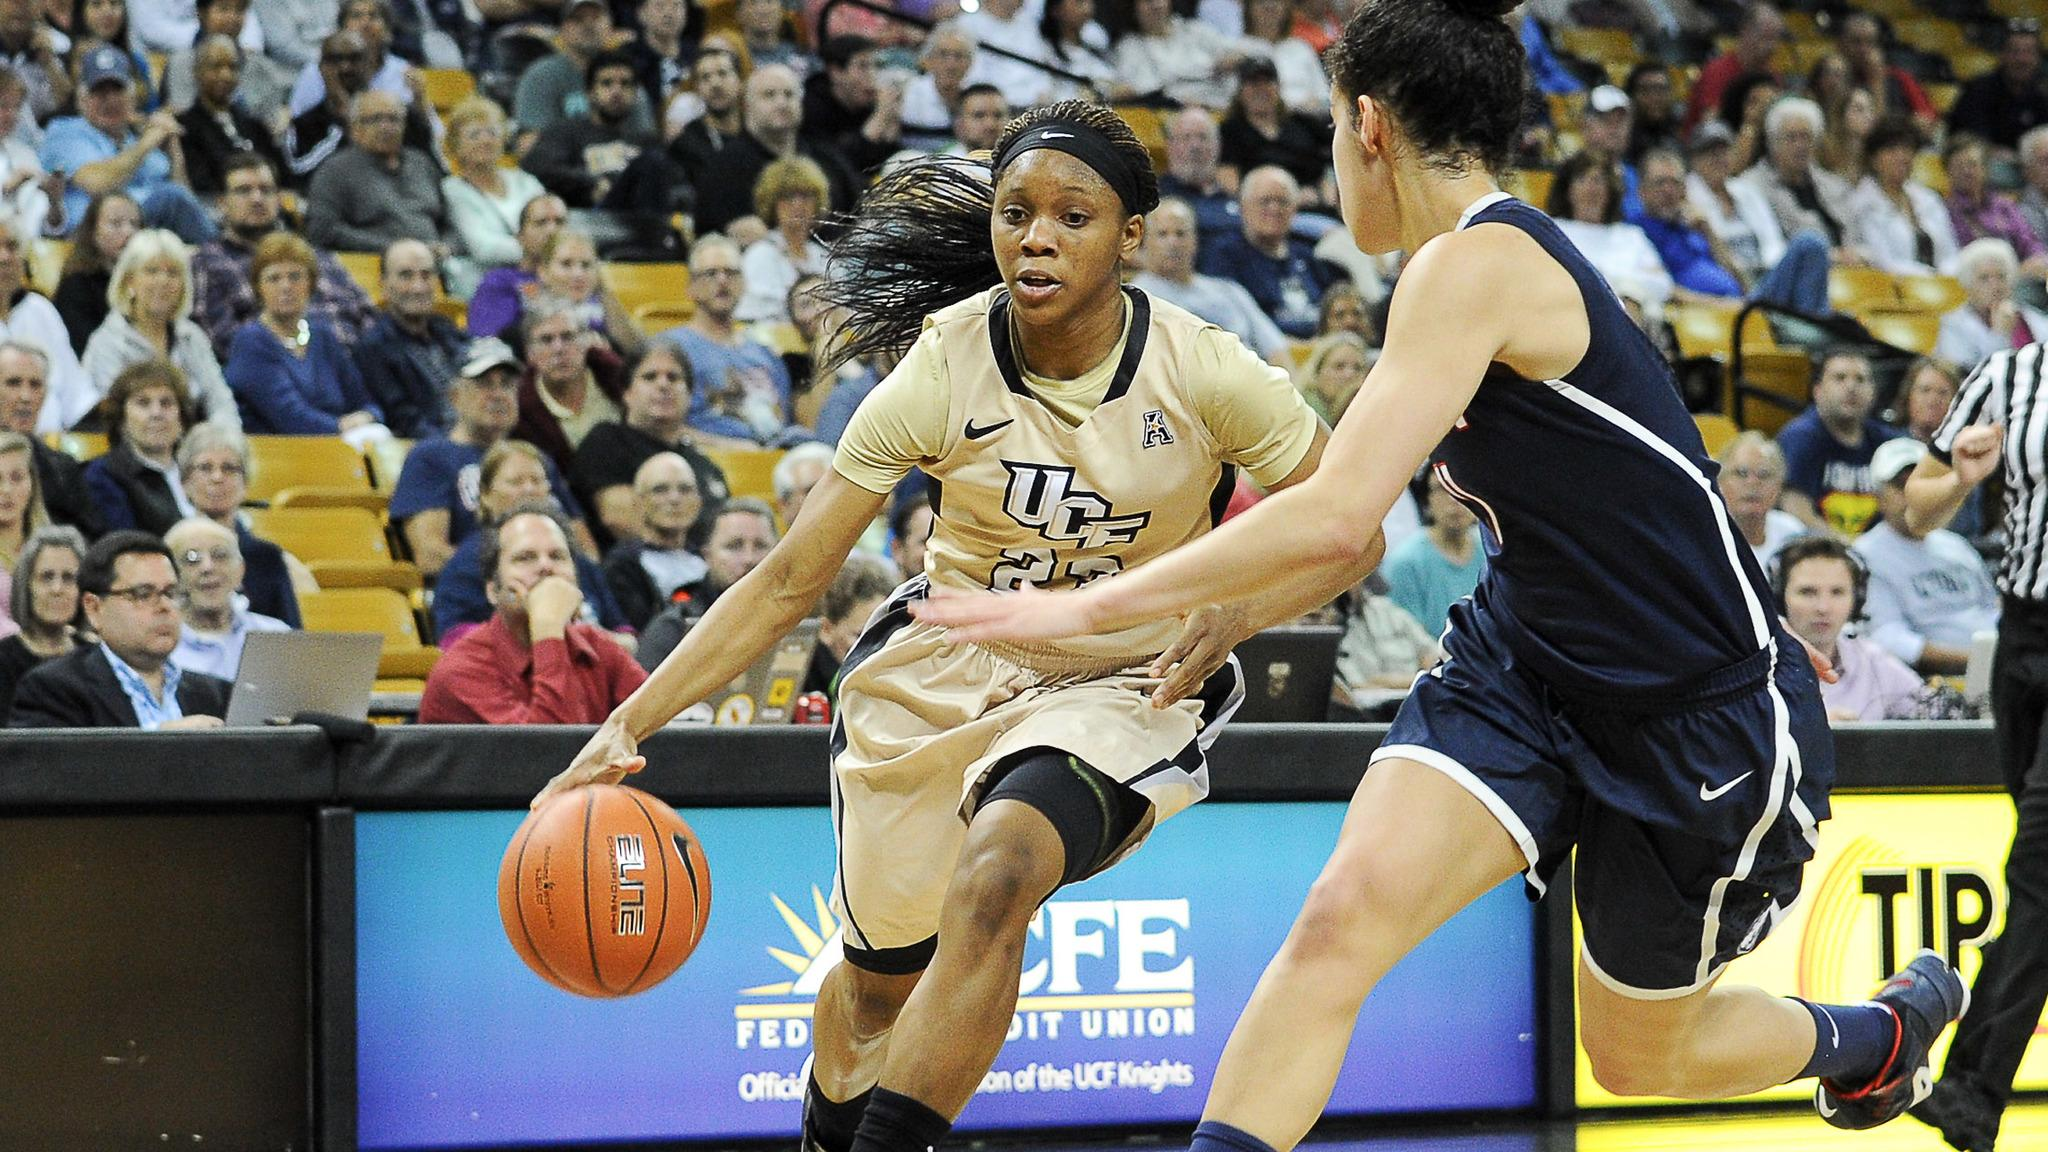 UCF Knights Womens Basketball vs. Temple Womens Basketball